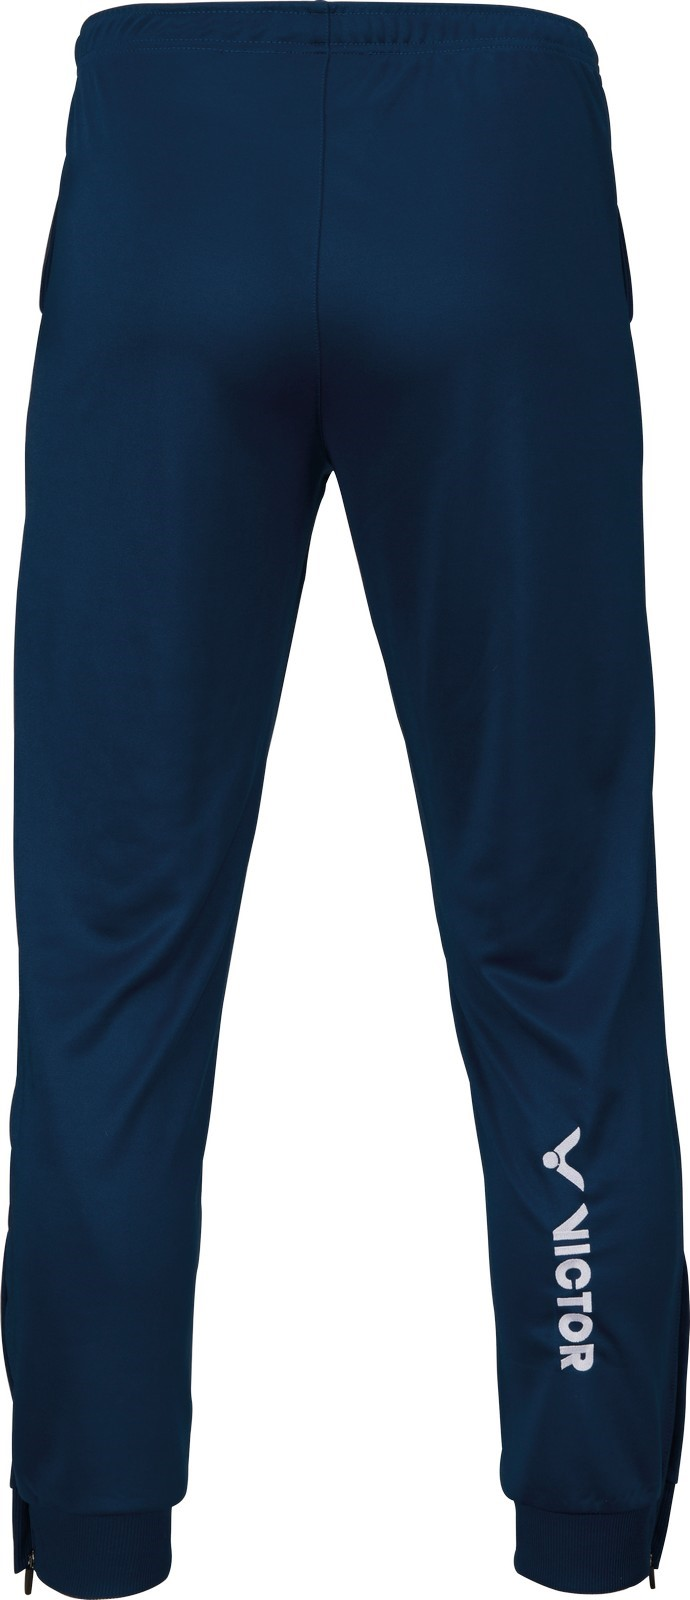 Victor TA Pants Team blue 3938